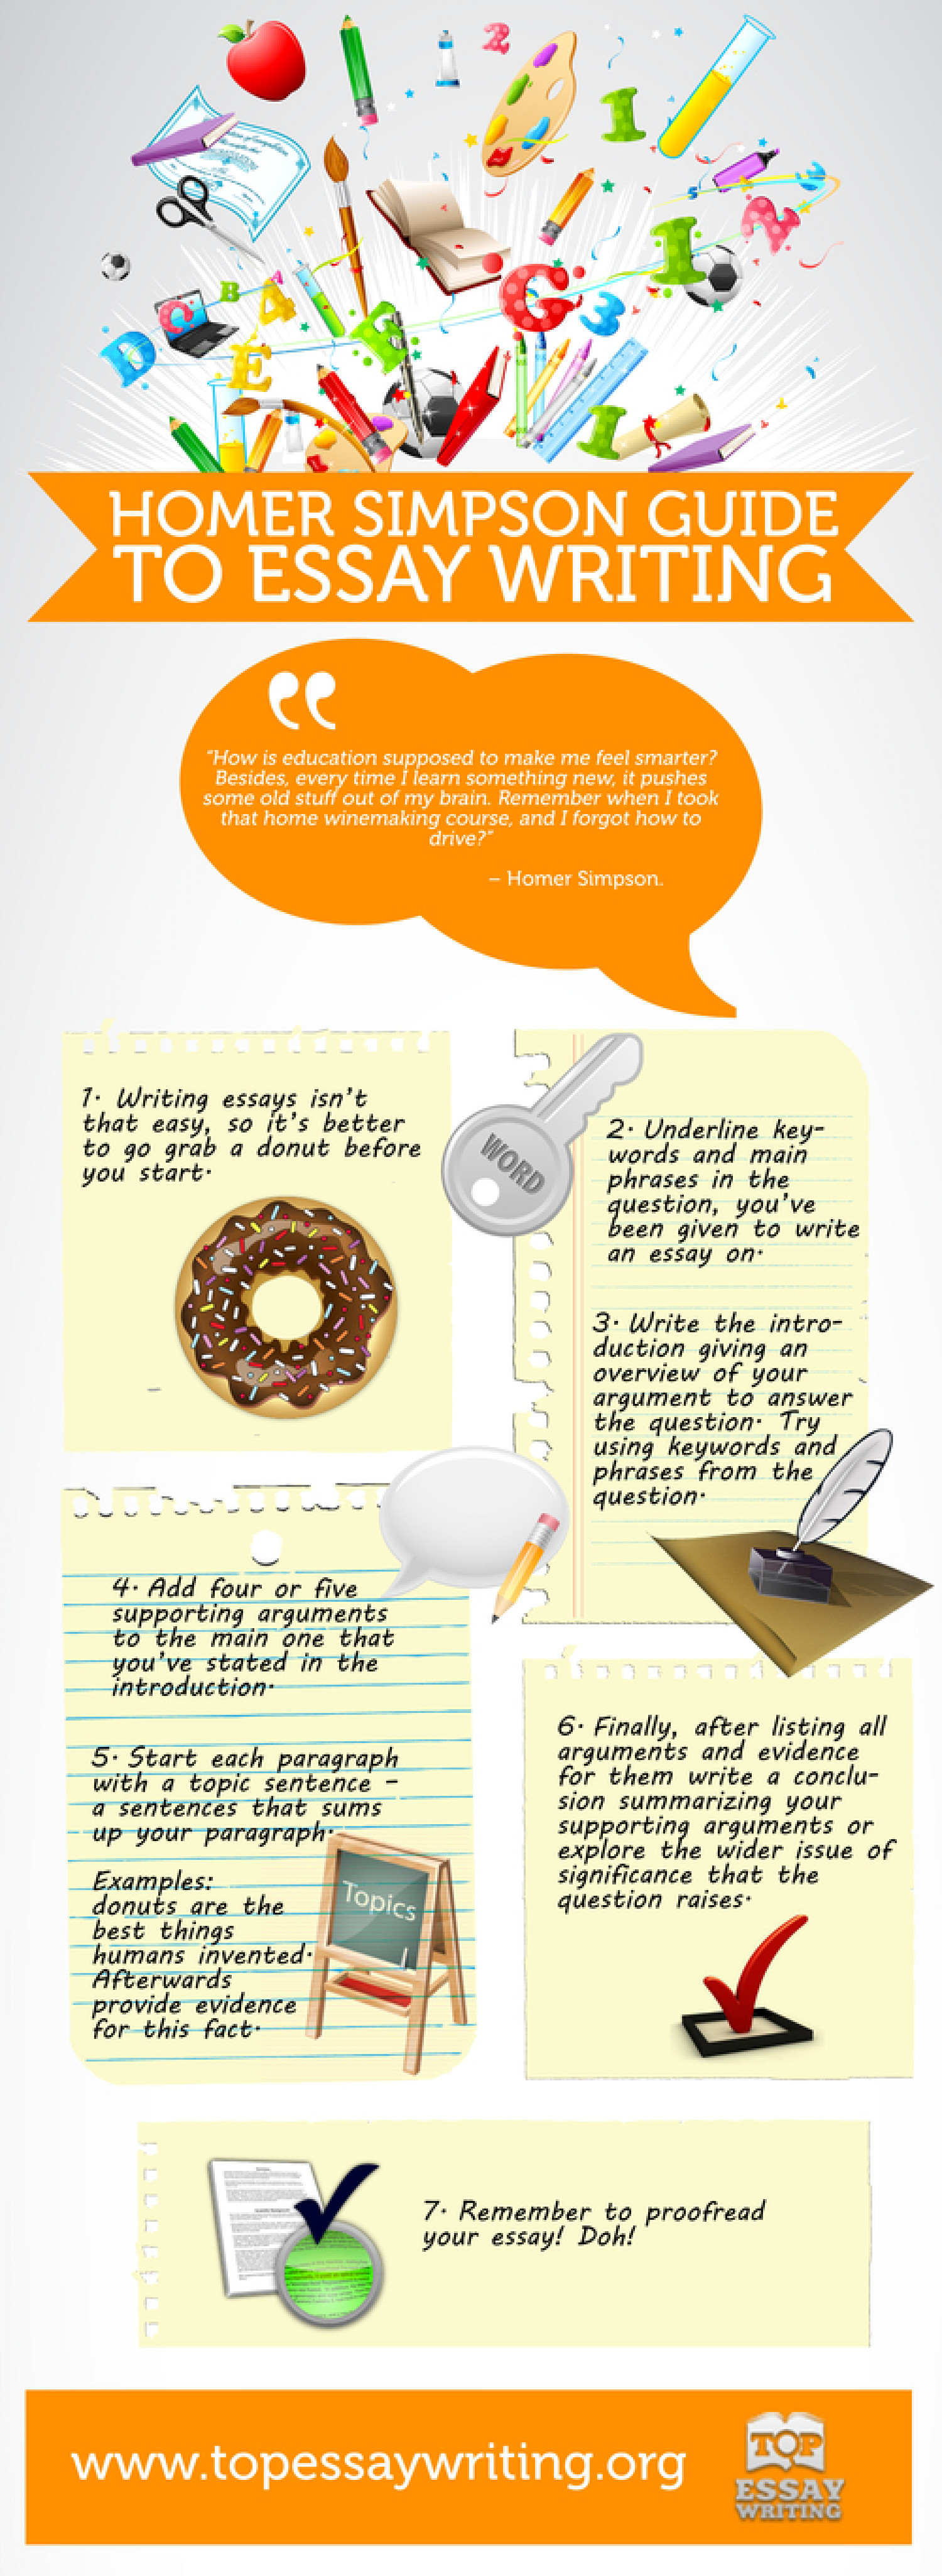 homer simpson guide to essay writing ly homer simpson guide to essay writing infographic